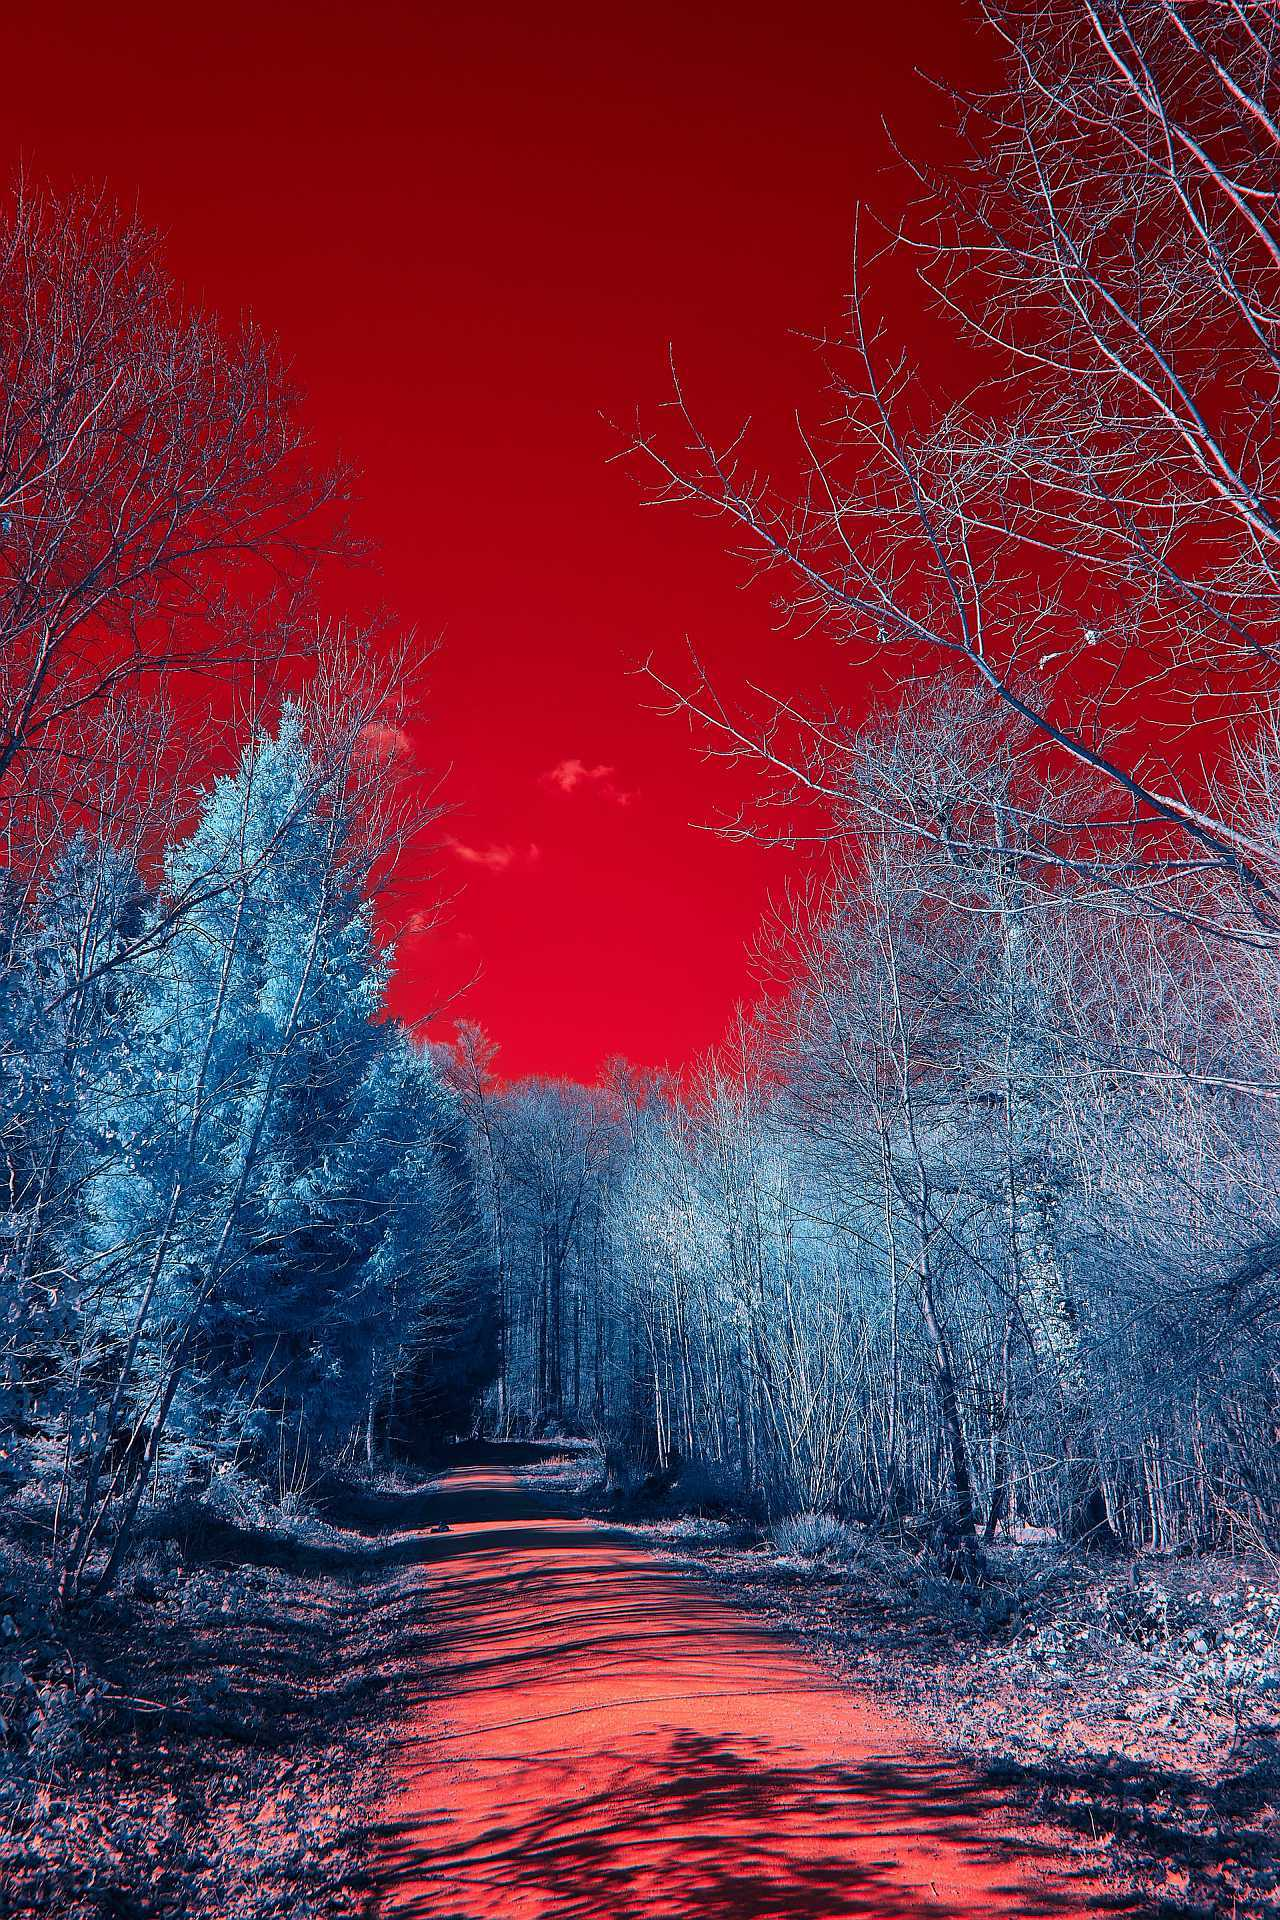 Infrared image with trees